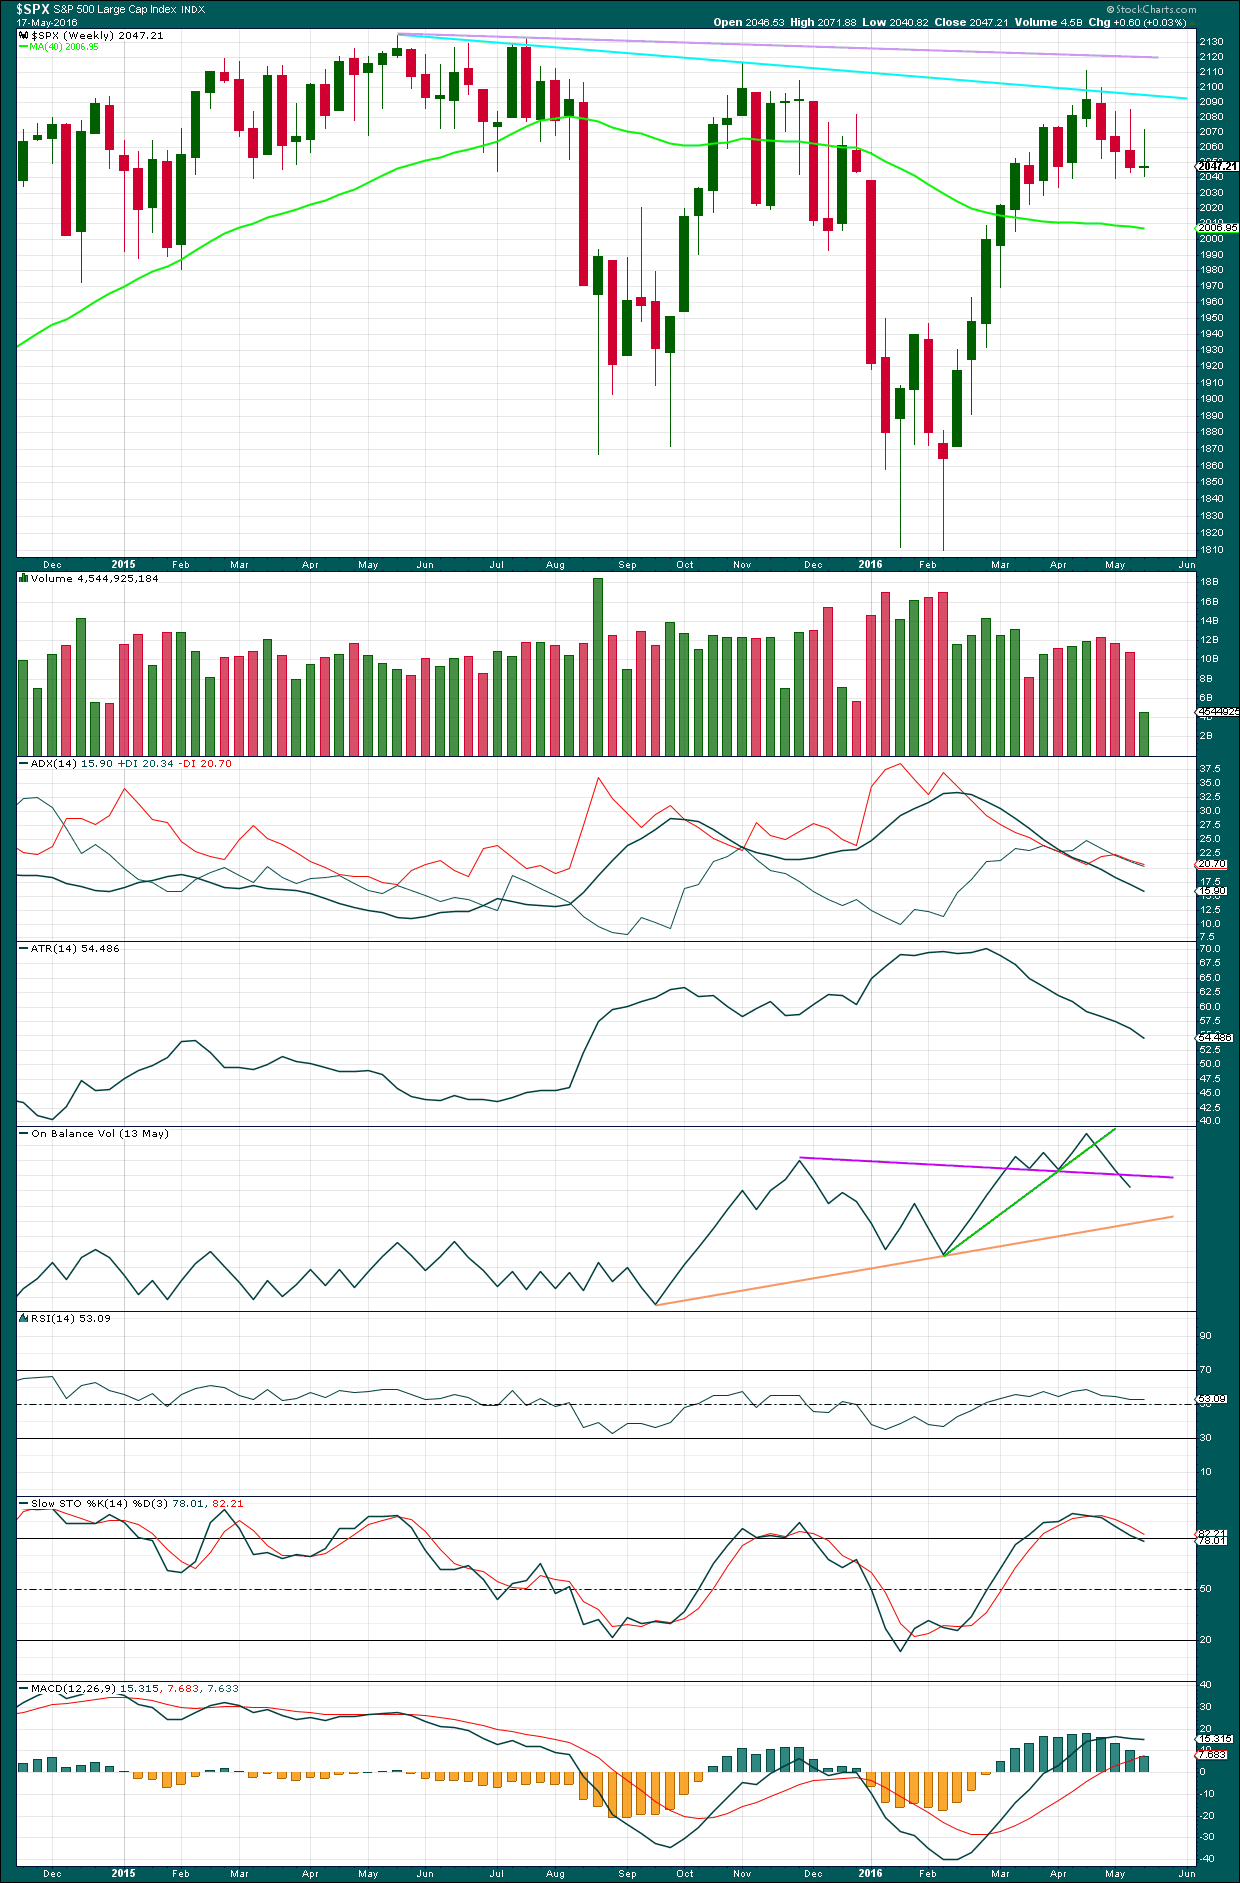 S&P 500 daily 2016